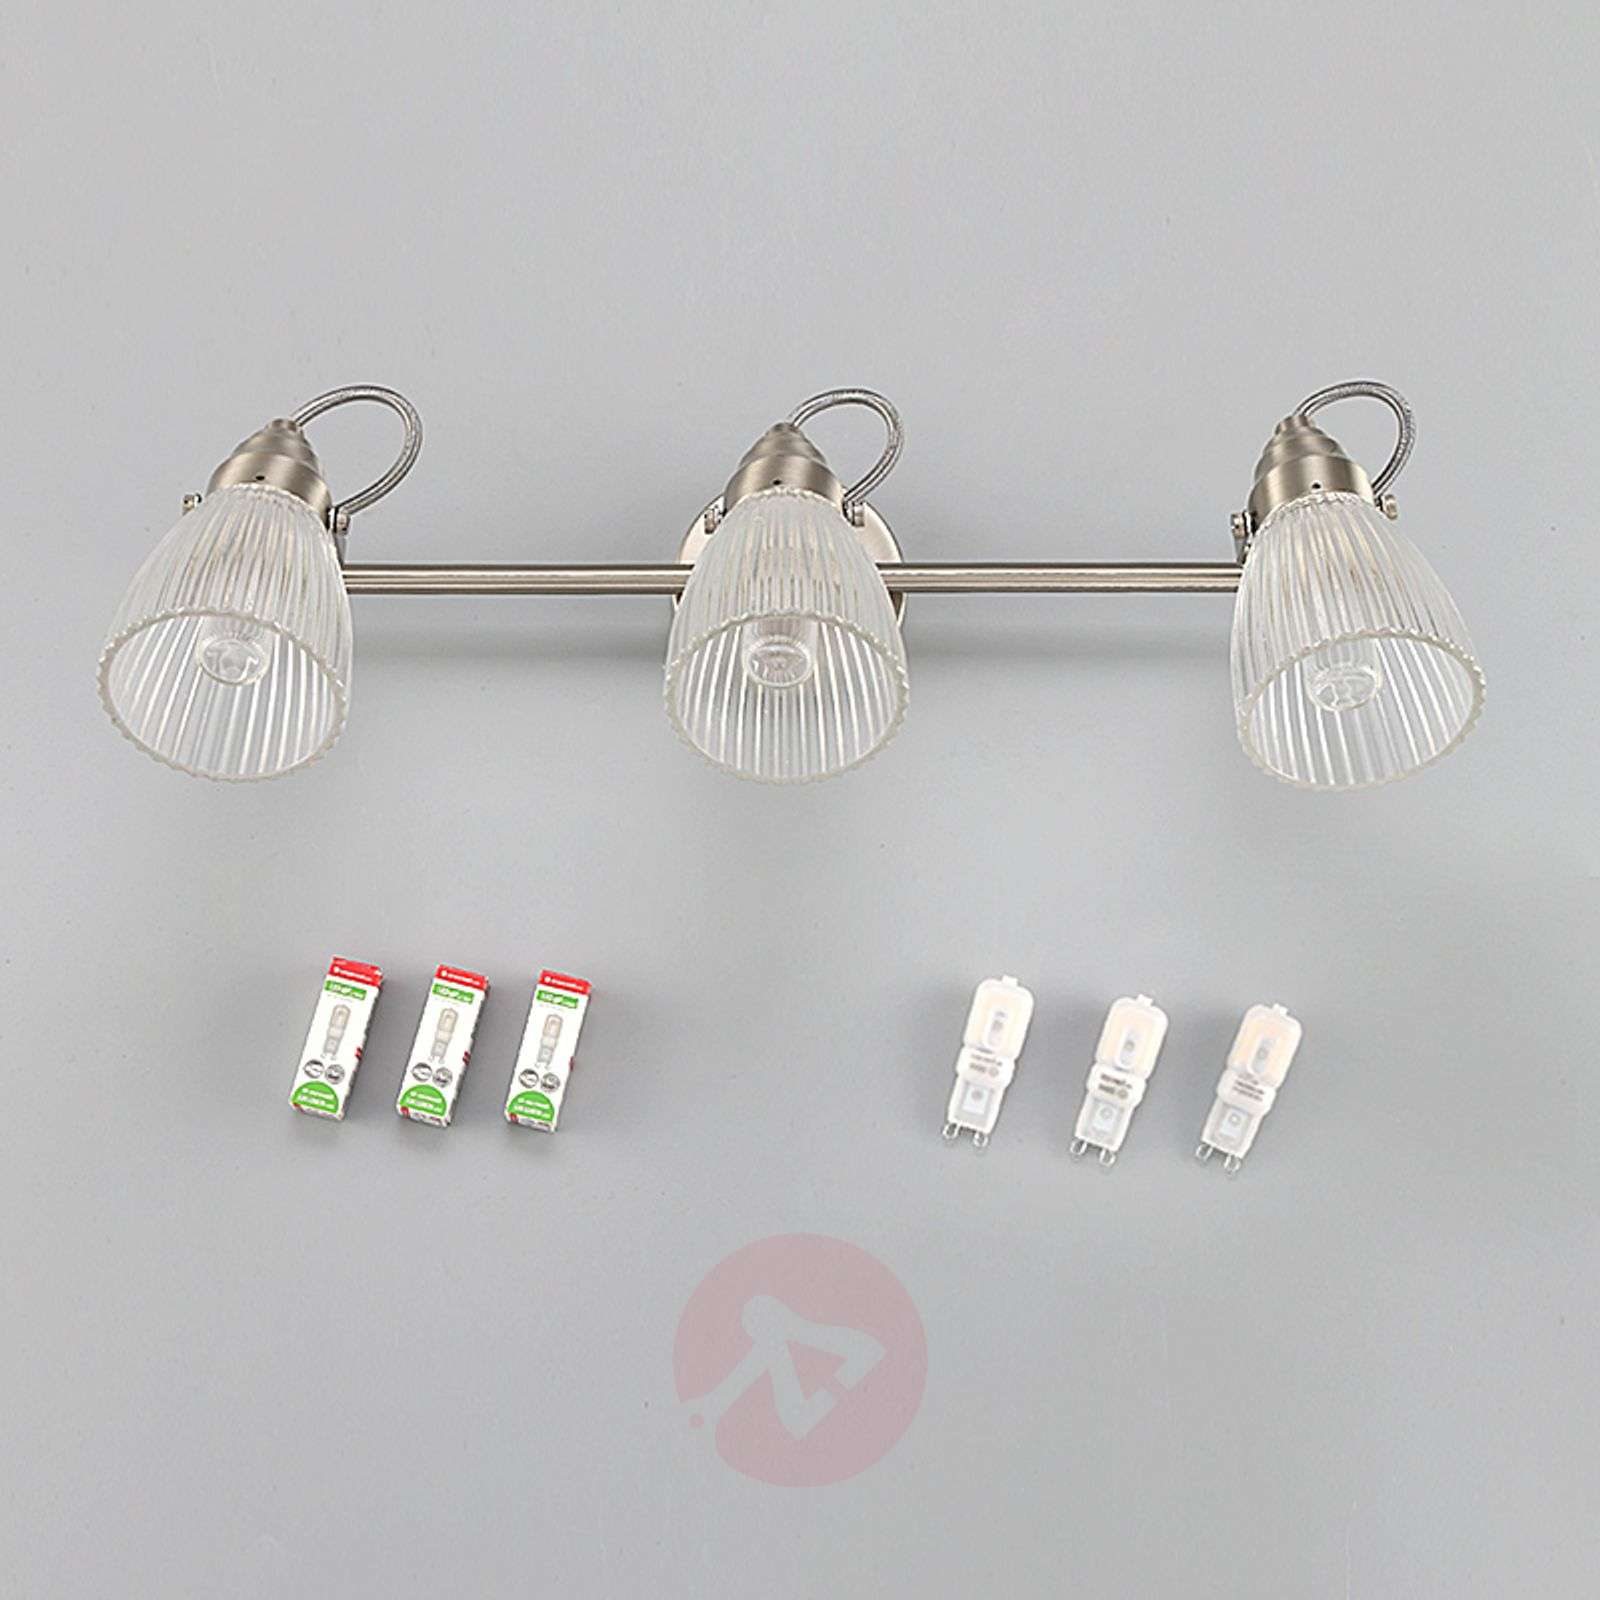 3-bulb bathroom ceiling light Kara with G9 LEDs-9620683-010